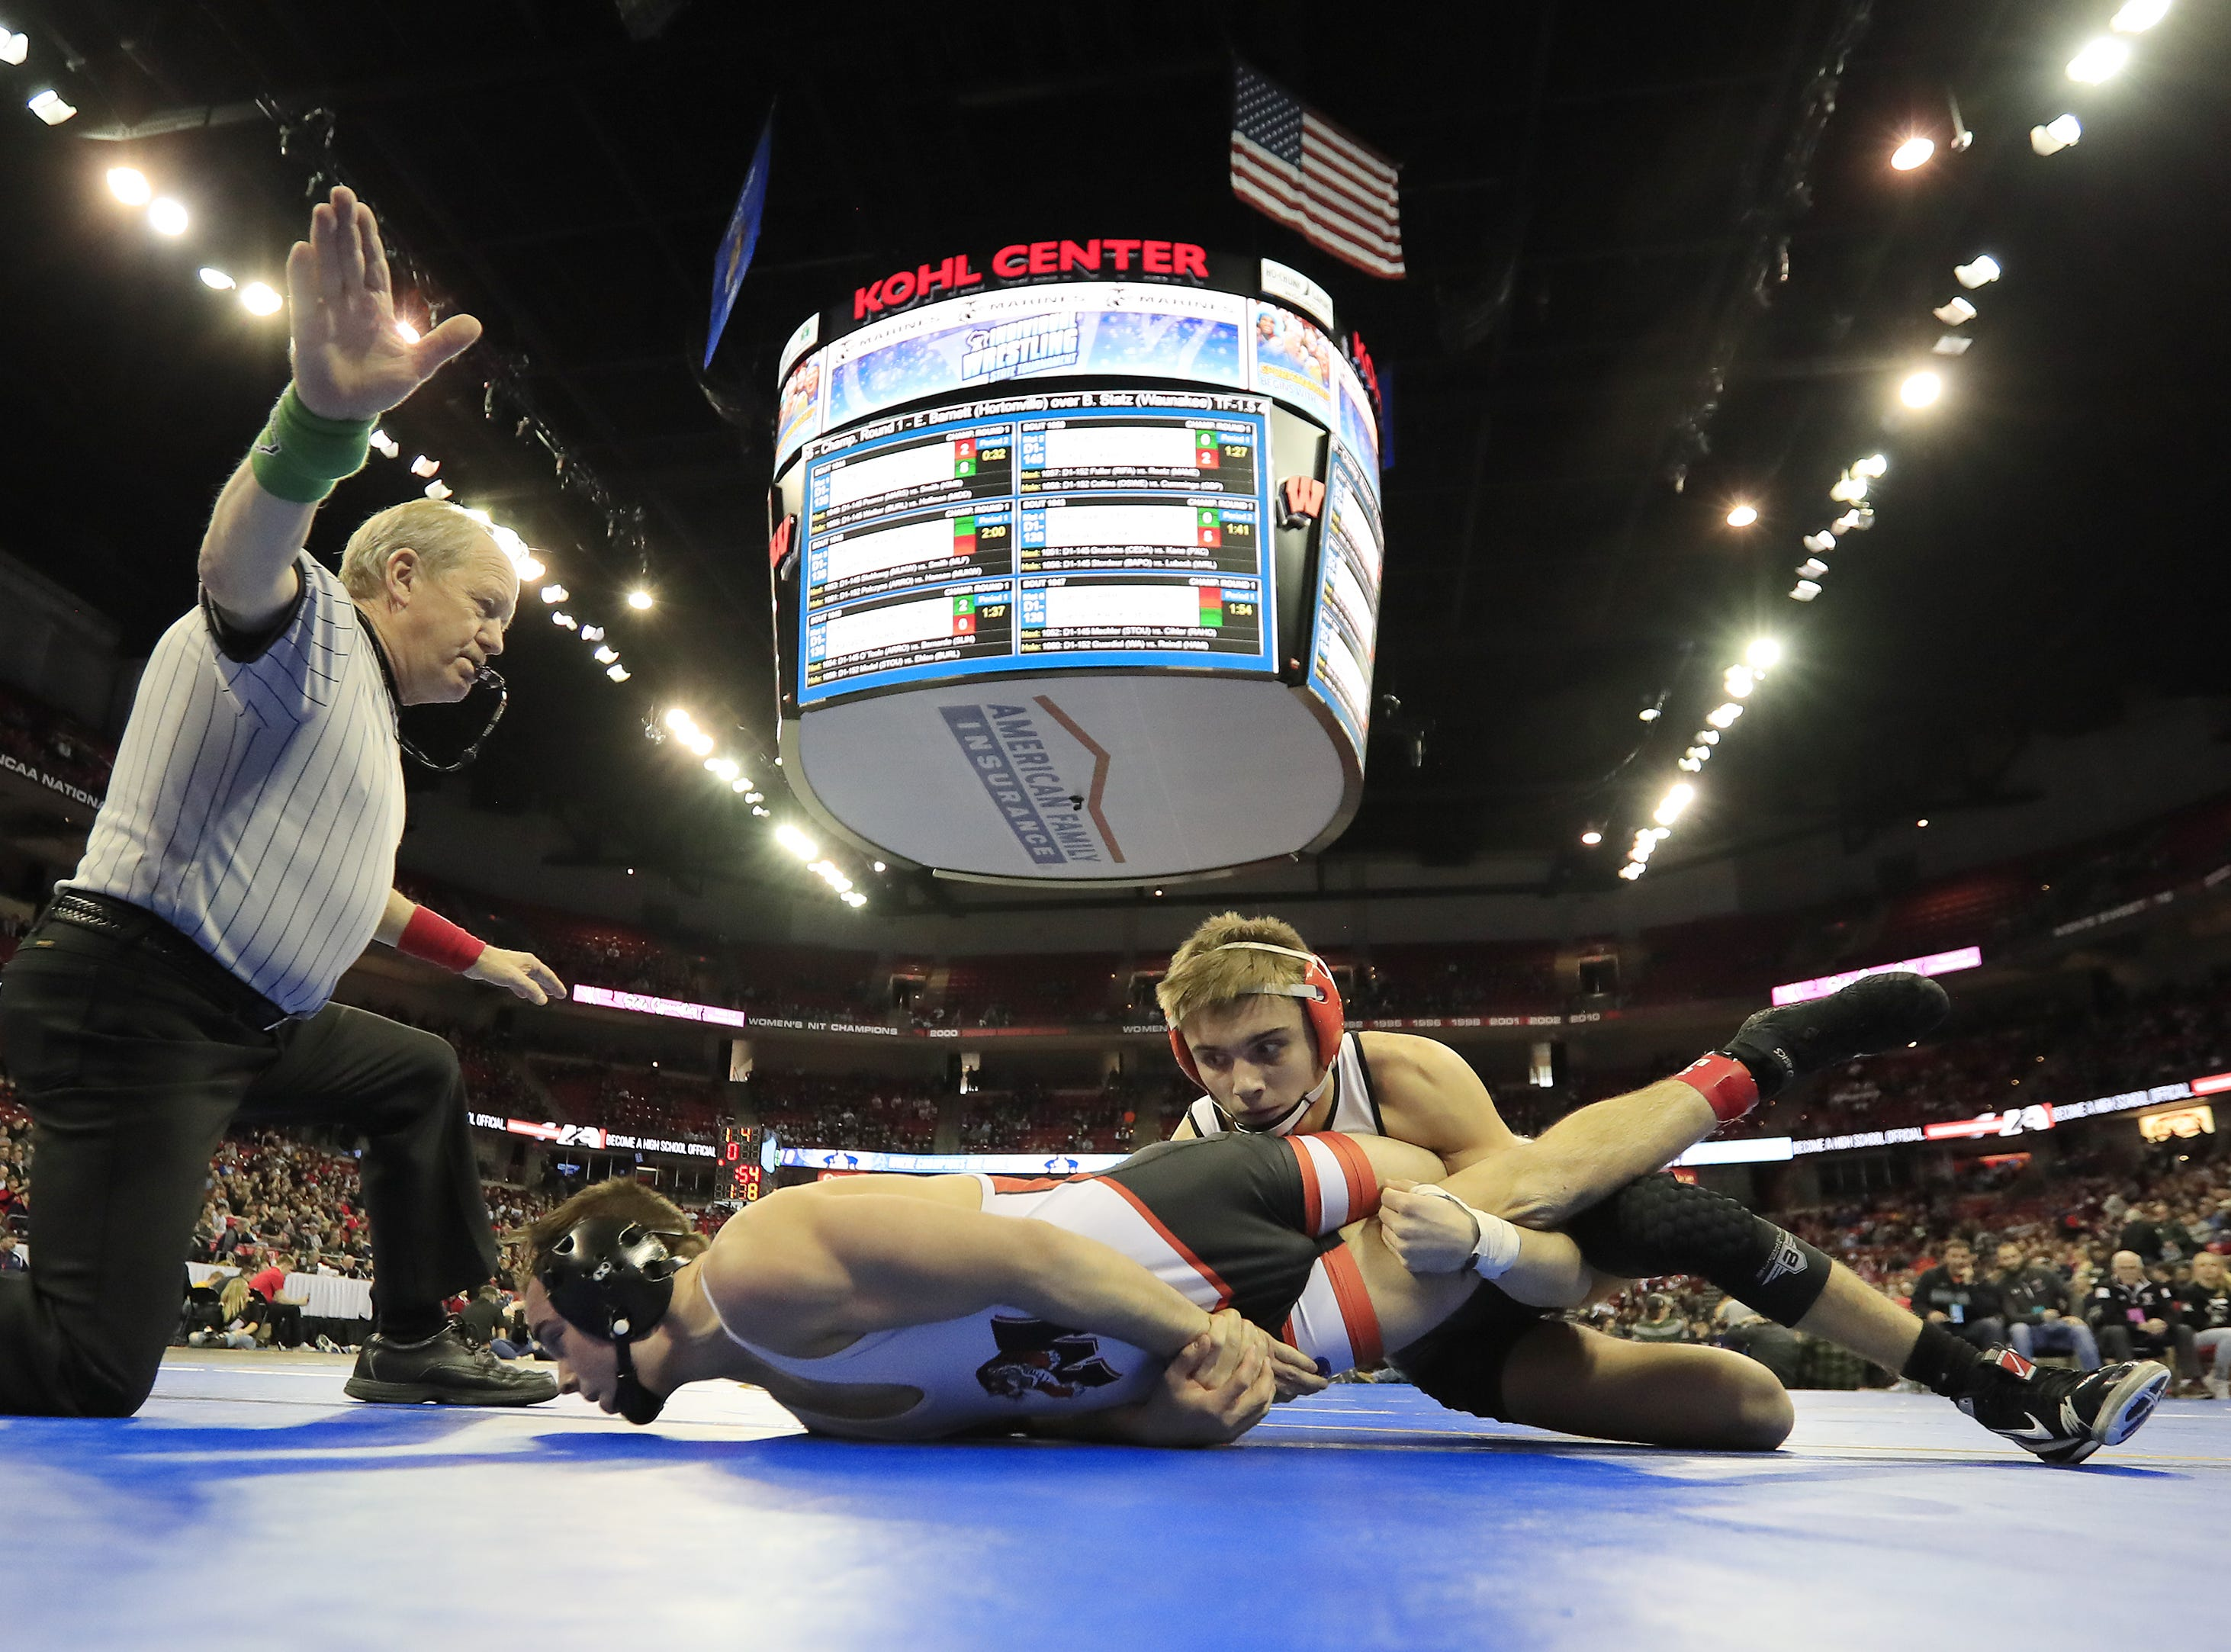 Marshfield's Tanner Kanable wrestles Burlington's Ben Kemprey in a Division 1 138-pound preliminary match at the WIAA state individual wrestling tournament at the Kohl Center on Thursday, February 21, 2019 in Madison, Wis. Adam Wesley/USA TODAY NETWORK-Wisconsin